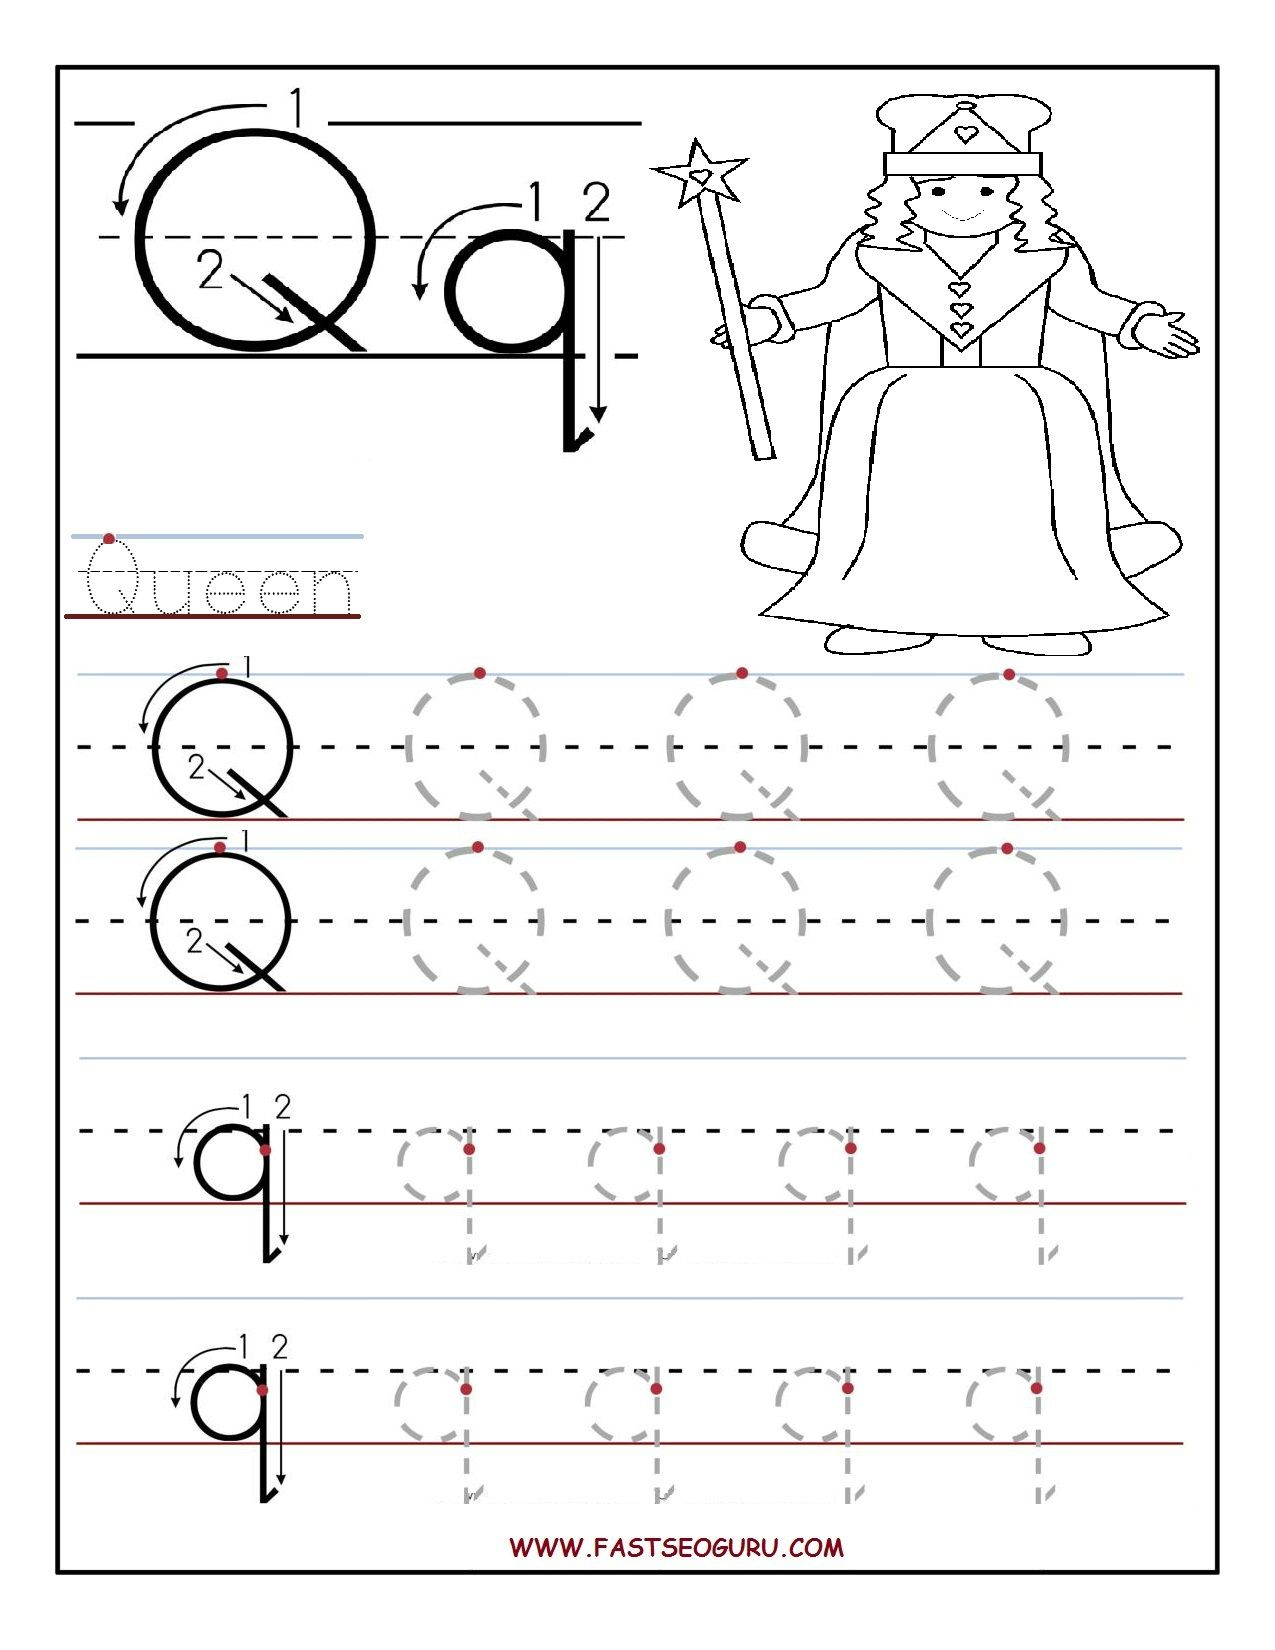 Printable Letter Q Tracing Worksheets For Preschool